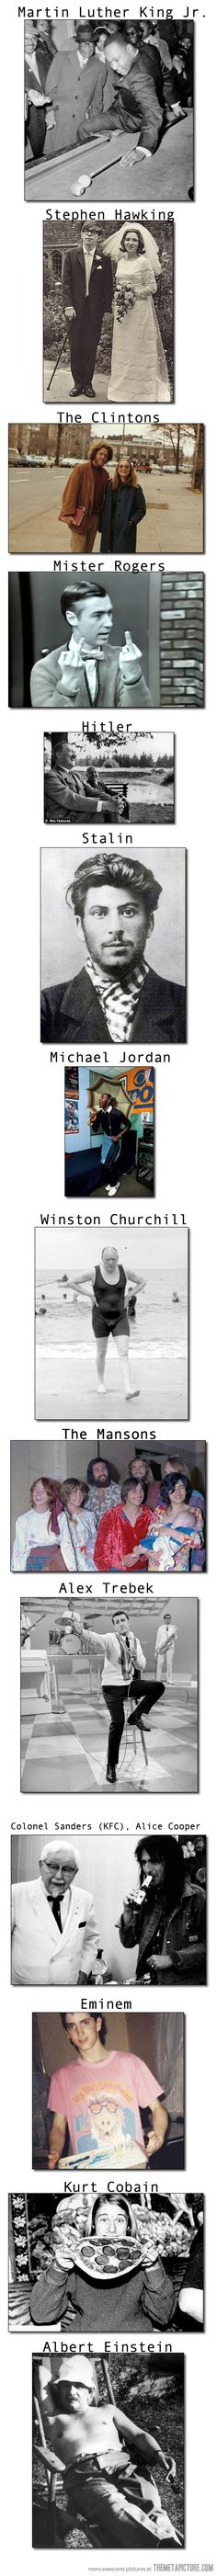 Rare Photos Of Legendary People....the Clintons nearly killed me, and then I saw Churchill.....